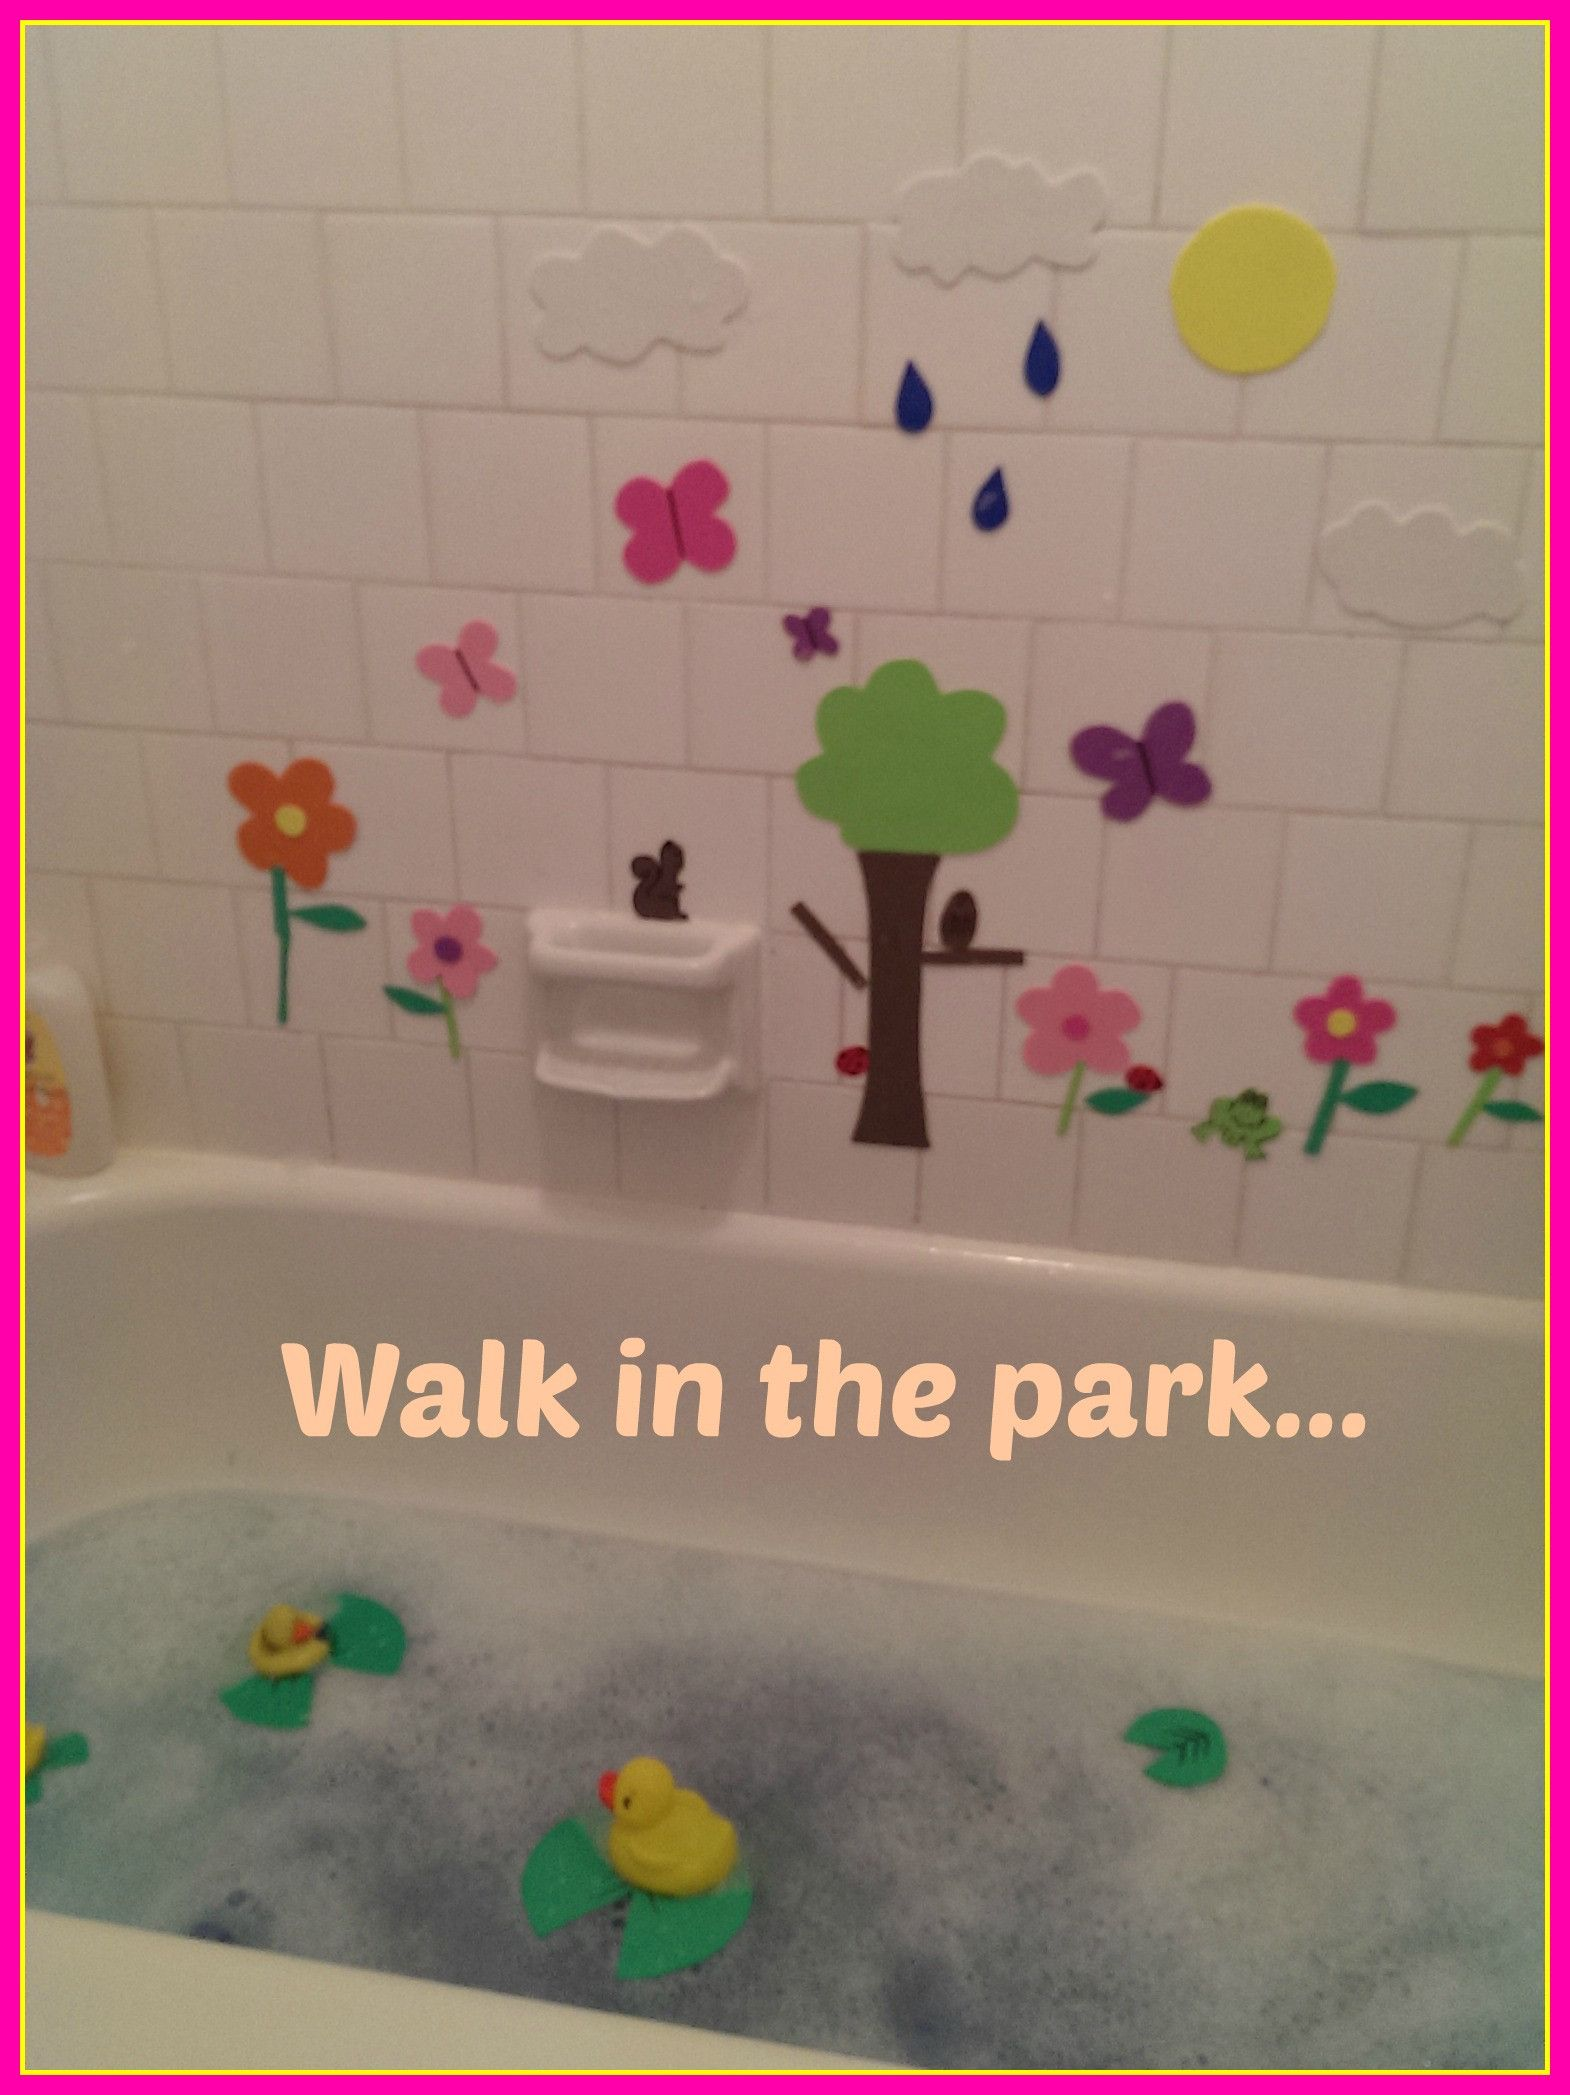 """Foam """"stickers"""" for the bath tub. Countless possibilities! Park themed, beach themed, alien themed, generic shapes, western, urban, whatever you can think of! Just cut out craft foam, dip them in water and stick them to the side of the tub. Inexpensive to start and totally reusable. Clean up is easy! Just let them dry and sweep them off the wall and back into their bag. We love them! So great for the kids imagination. - The Pinner Mom"""